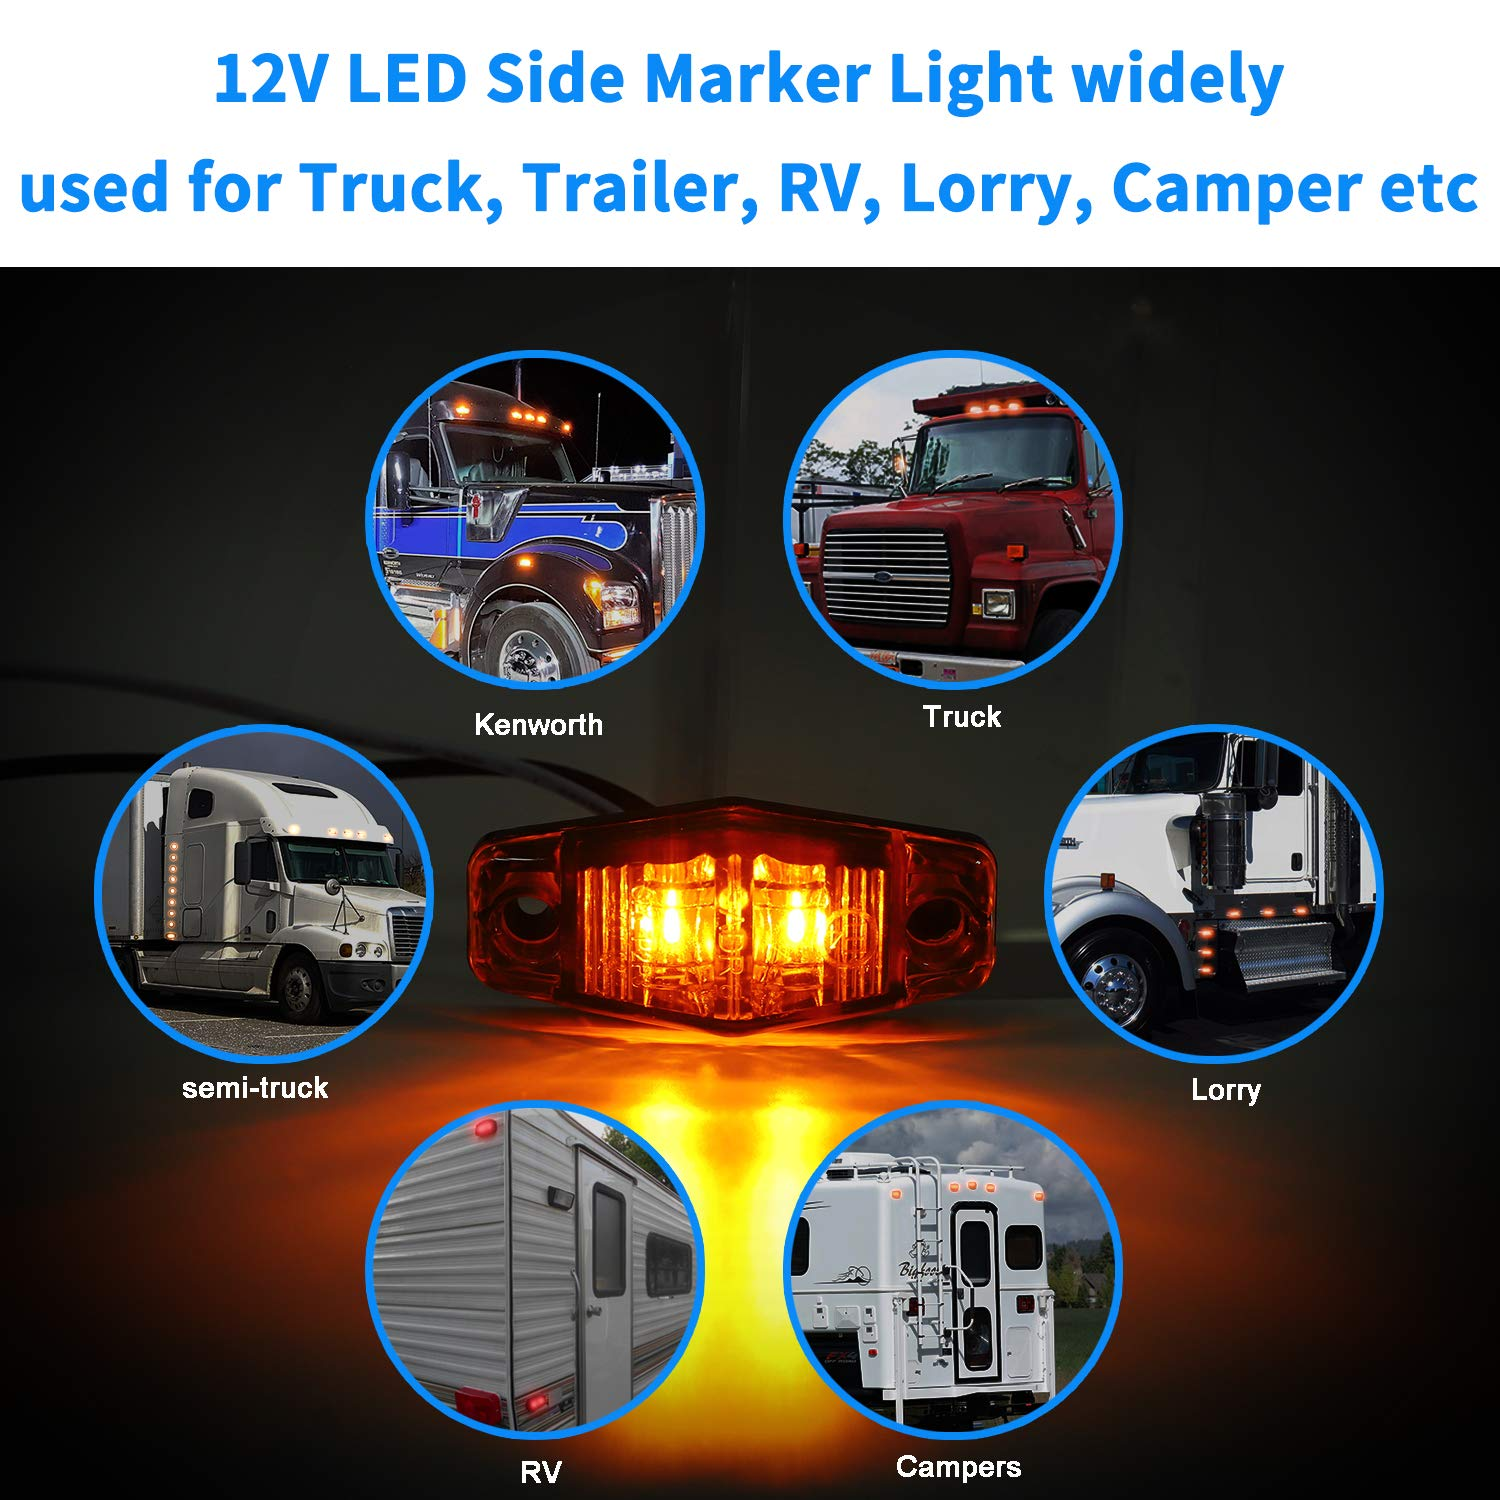 2.5 Inch Waterproof Mini Surface Mount Clearance Identification Lights for Truck Trailer Boat Camper RV Donepart Amber Red Marker Lights Oval LED Fender Lights